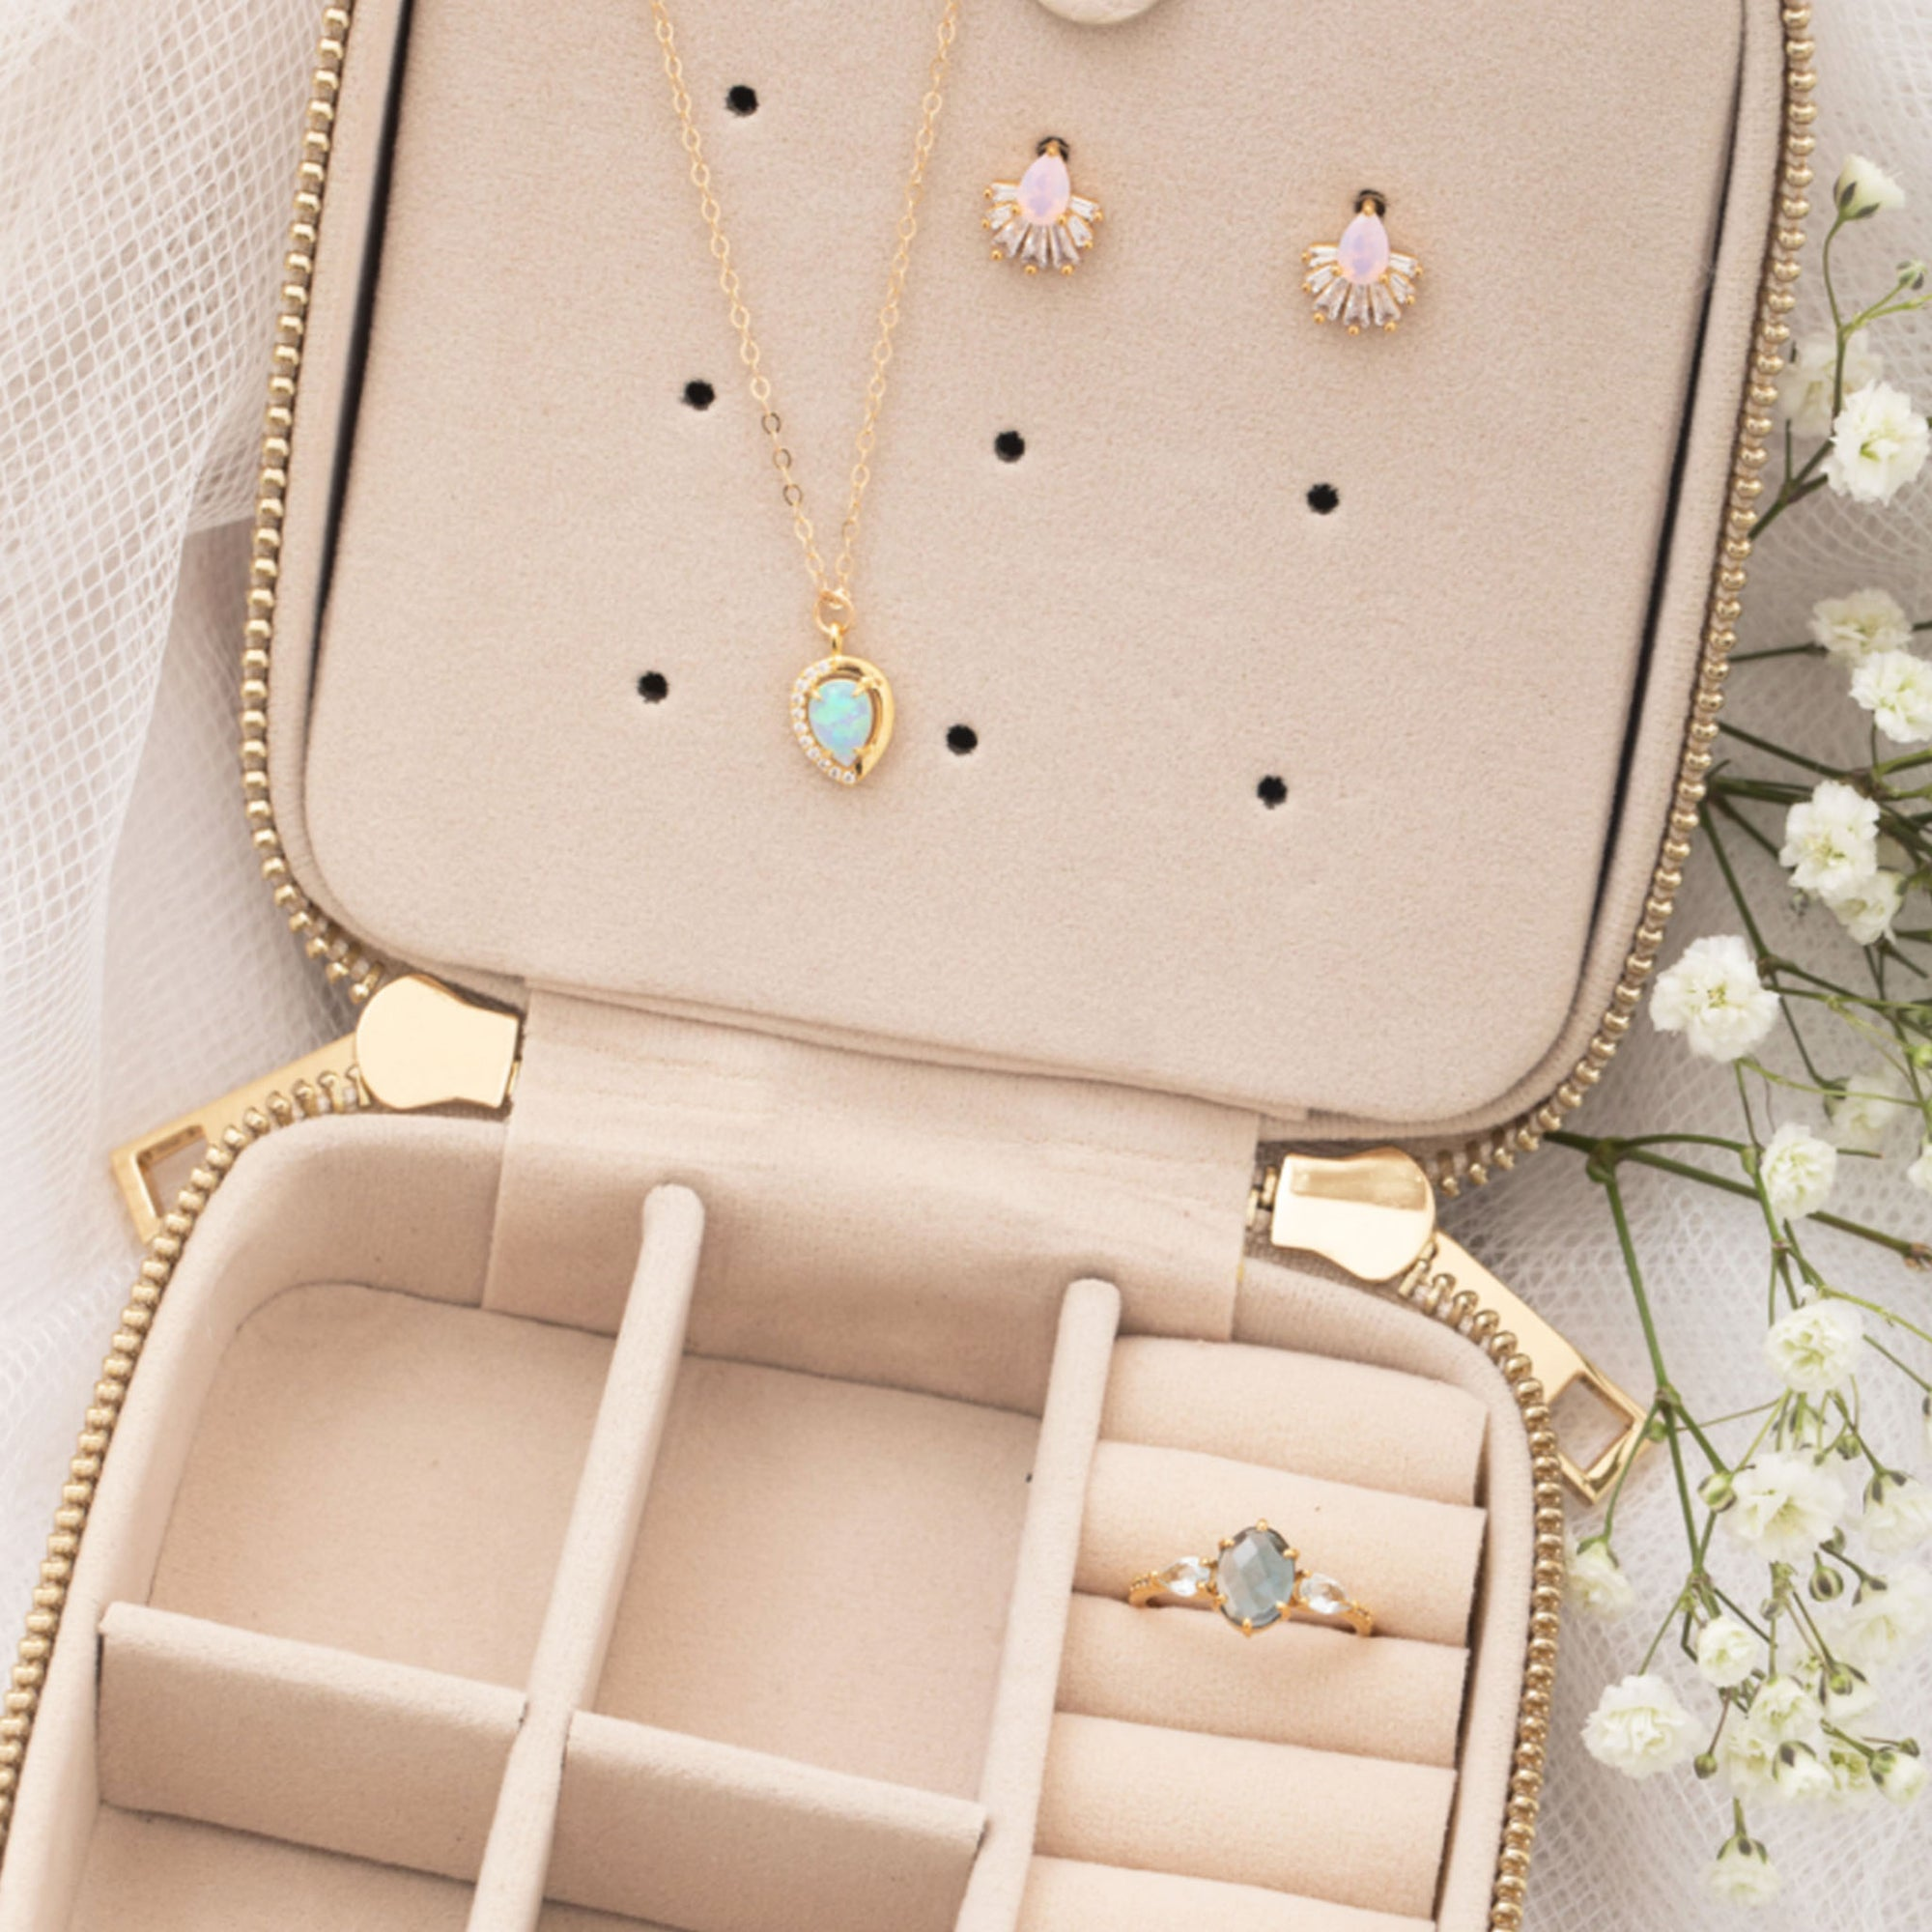 Surprise Jewelry Case (with 3 FREE pieces of jewelry)